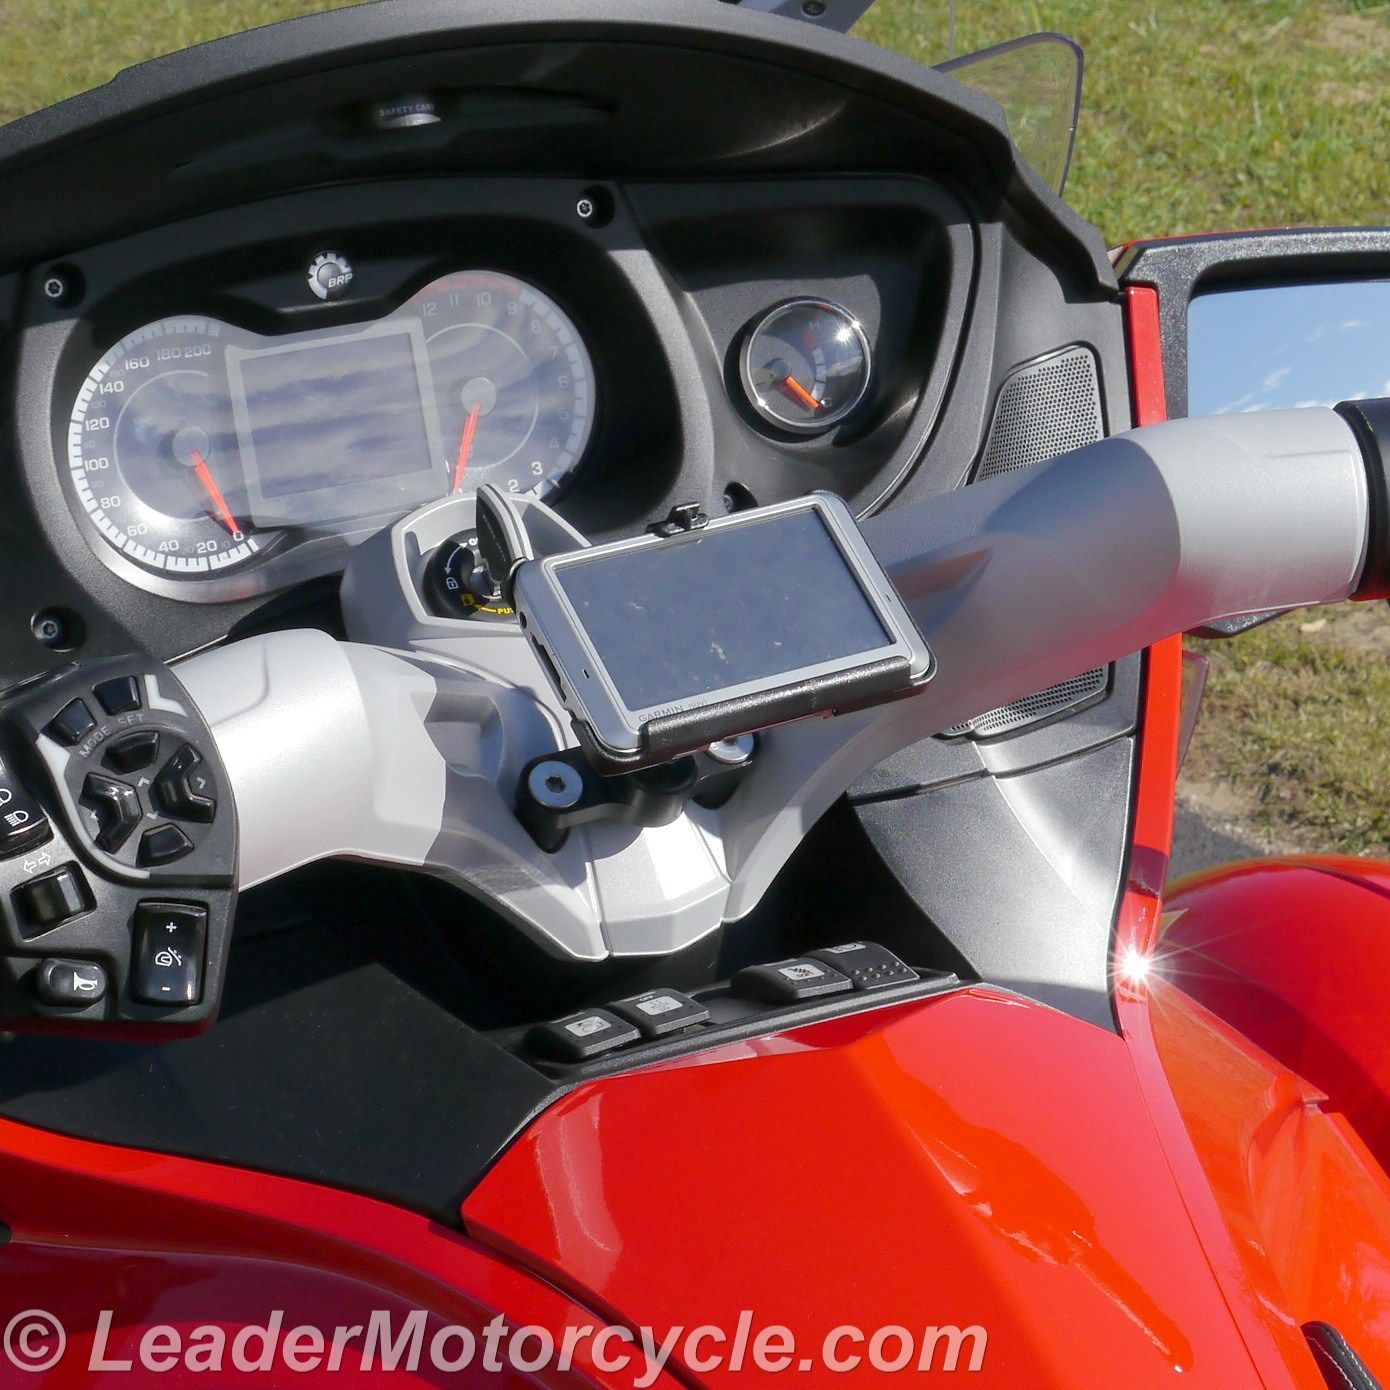 This is the eCaddy Diamond for the Can-Am Spyder (center mount). Works best with Garmin Nuvi and some TomTom GPS.